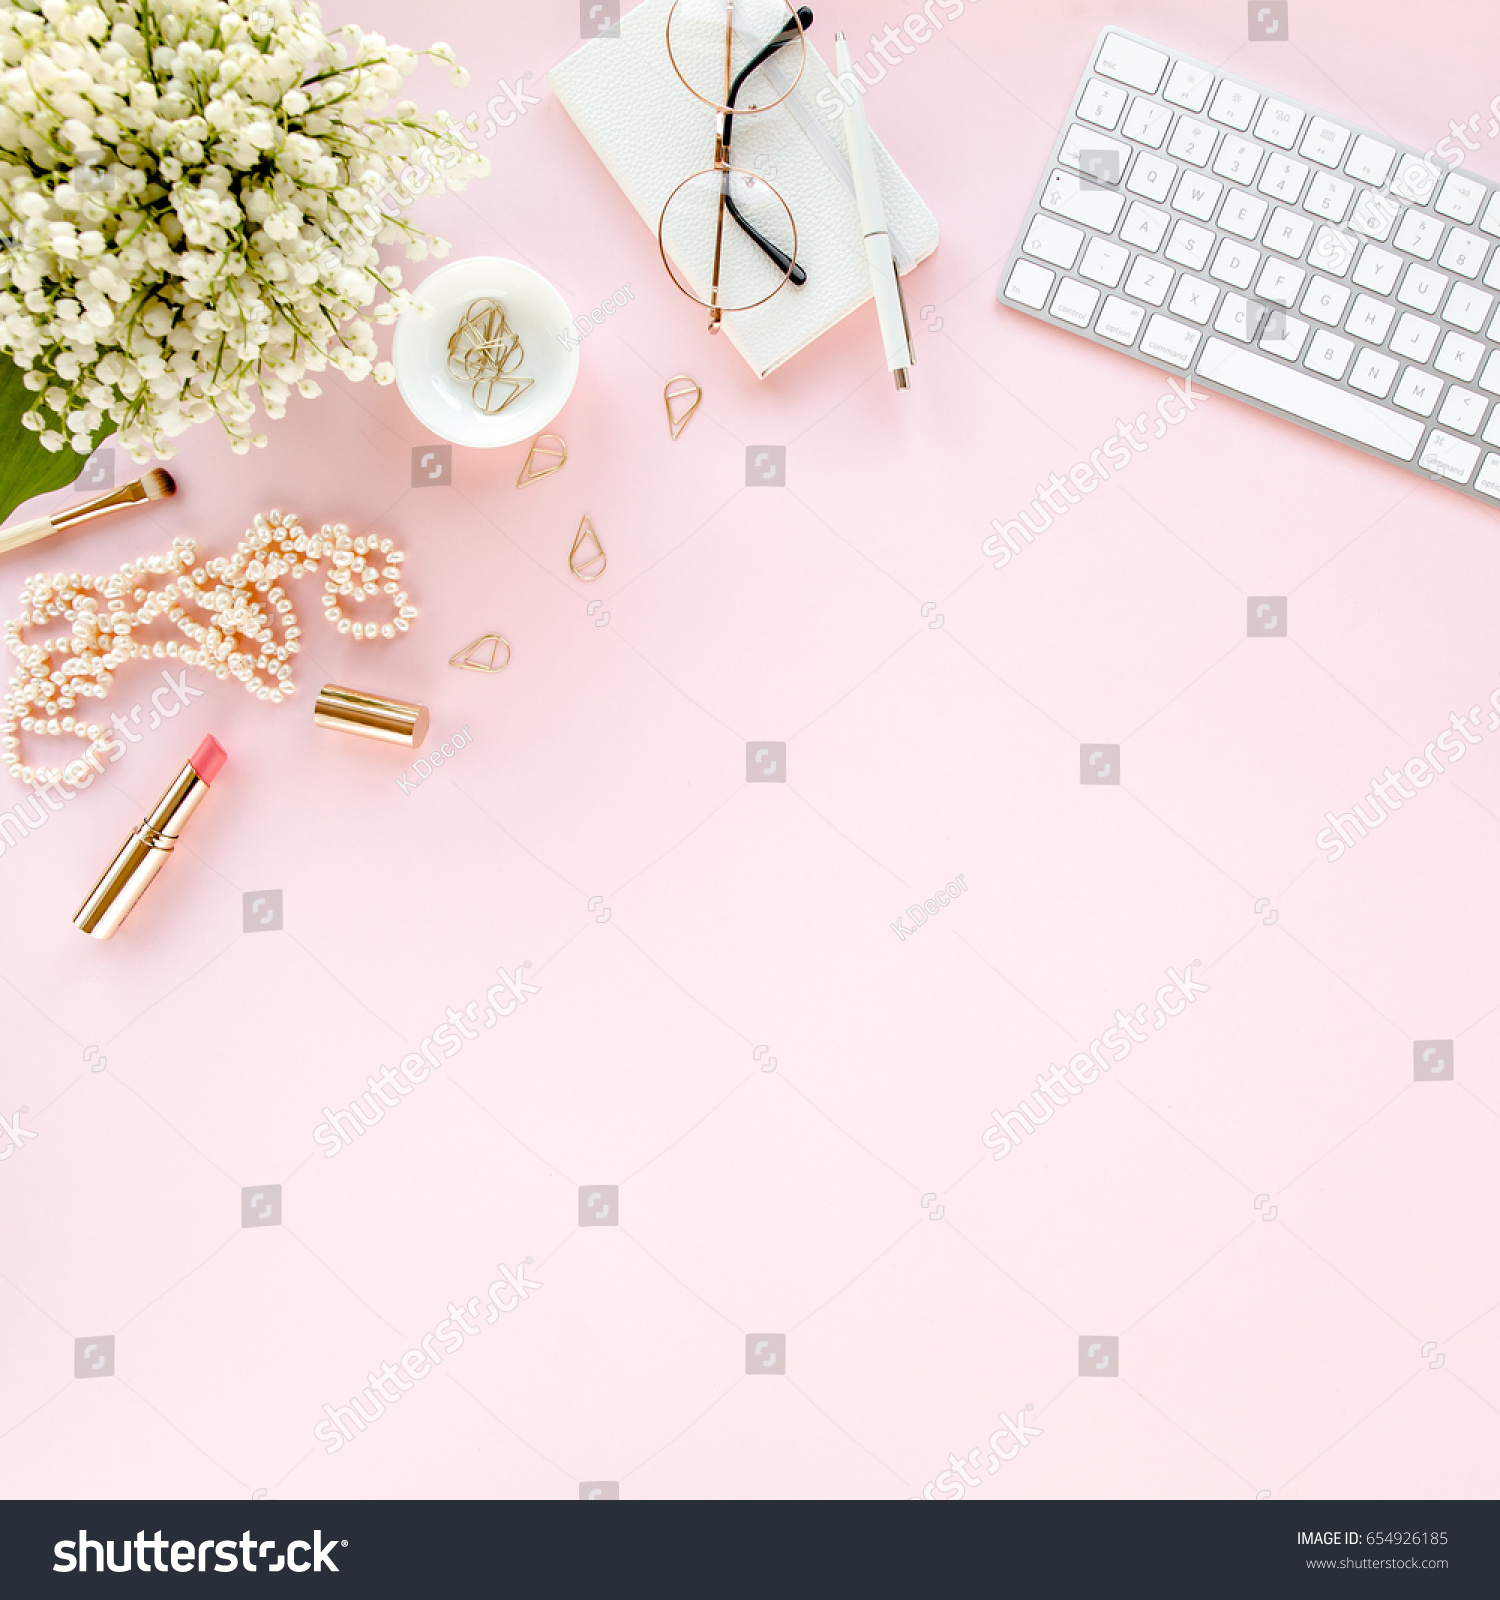 frame cream leaves depositphotos roses stock women workspace and s feminine with desk green photo